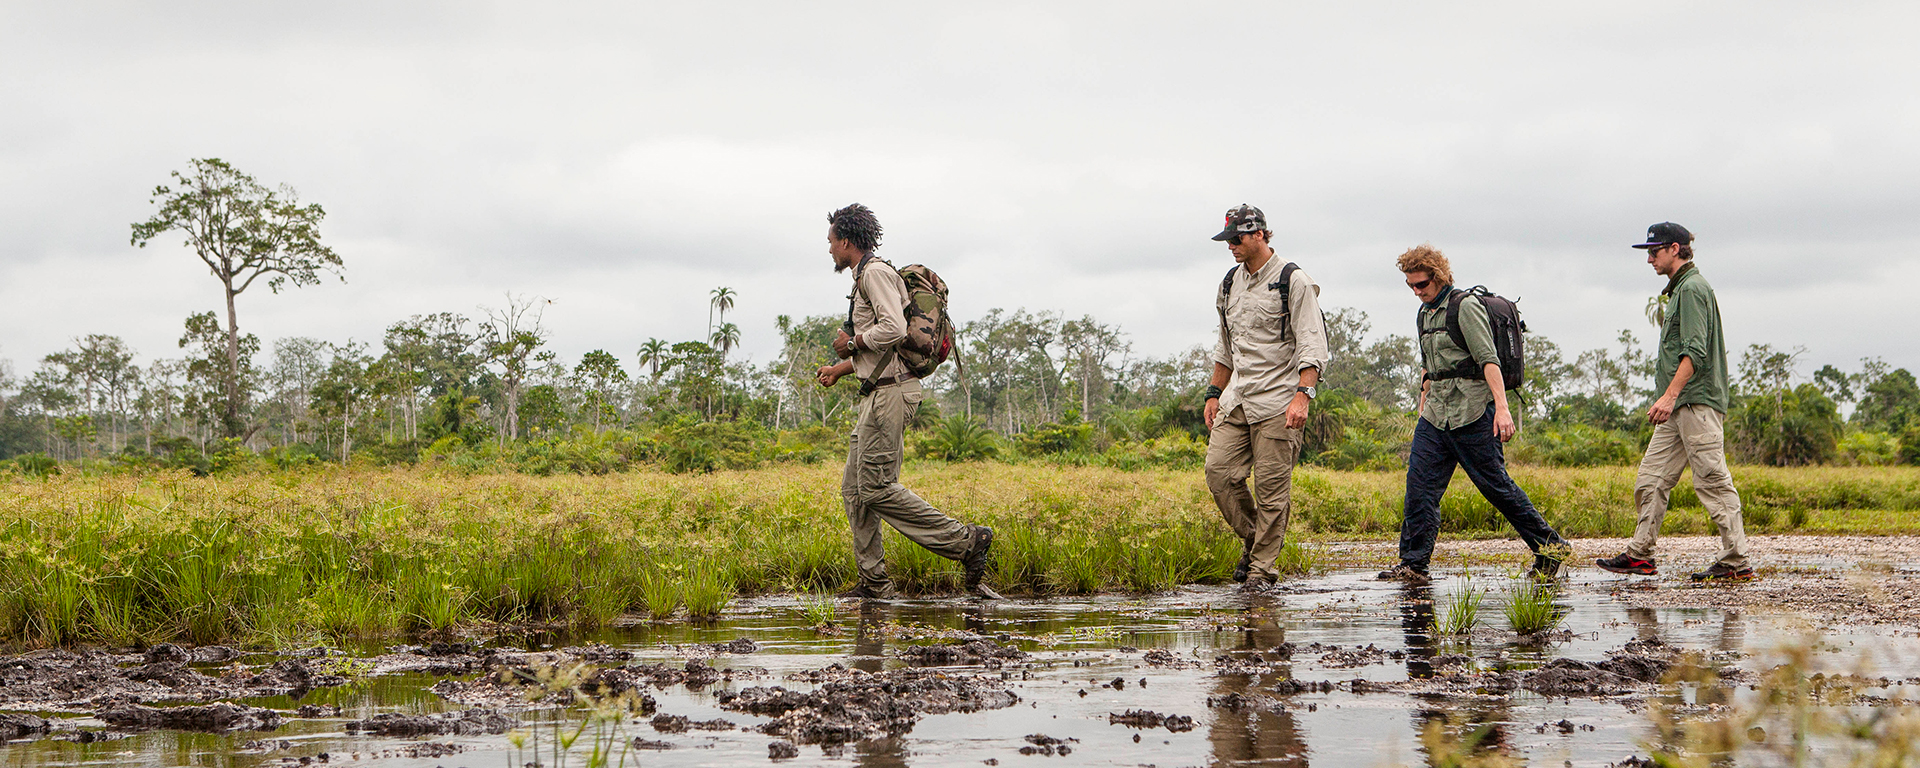 Congo's lush forests & wetlands offer one of the most pristine & undeveloped environments in the world.